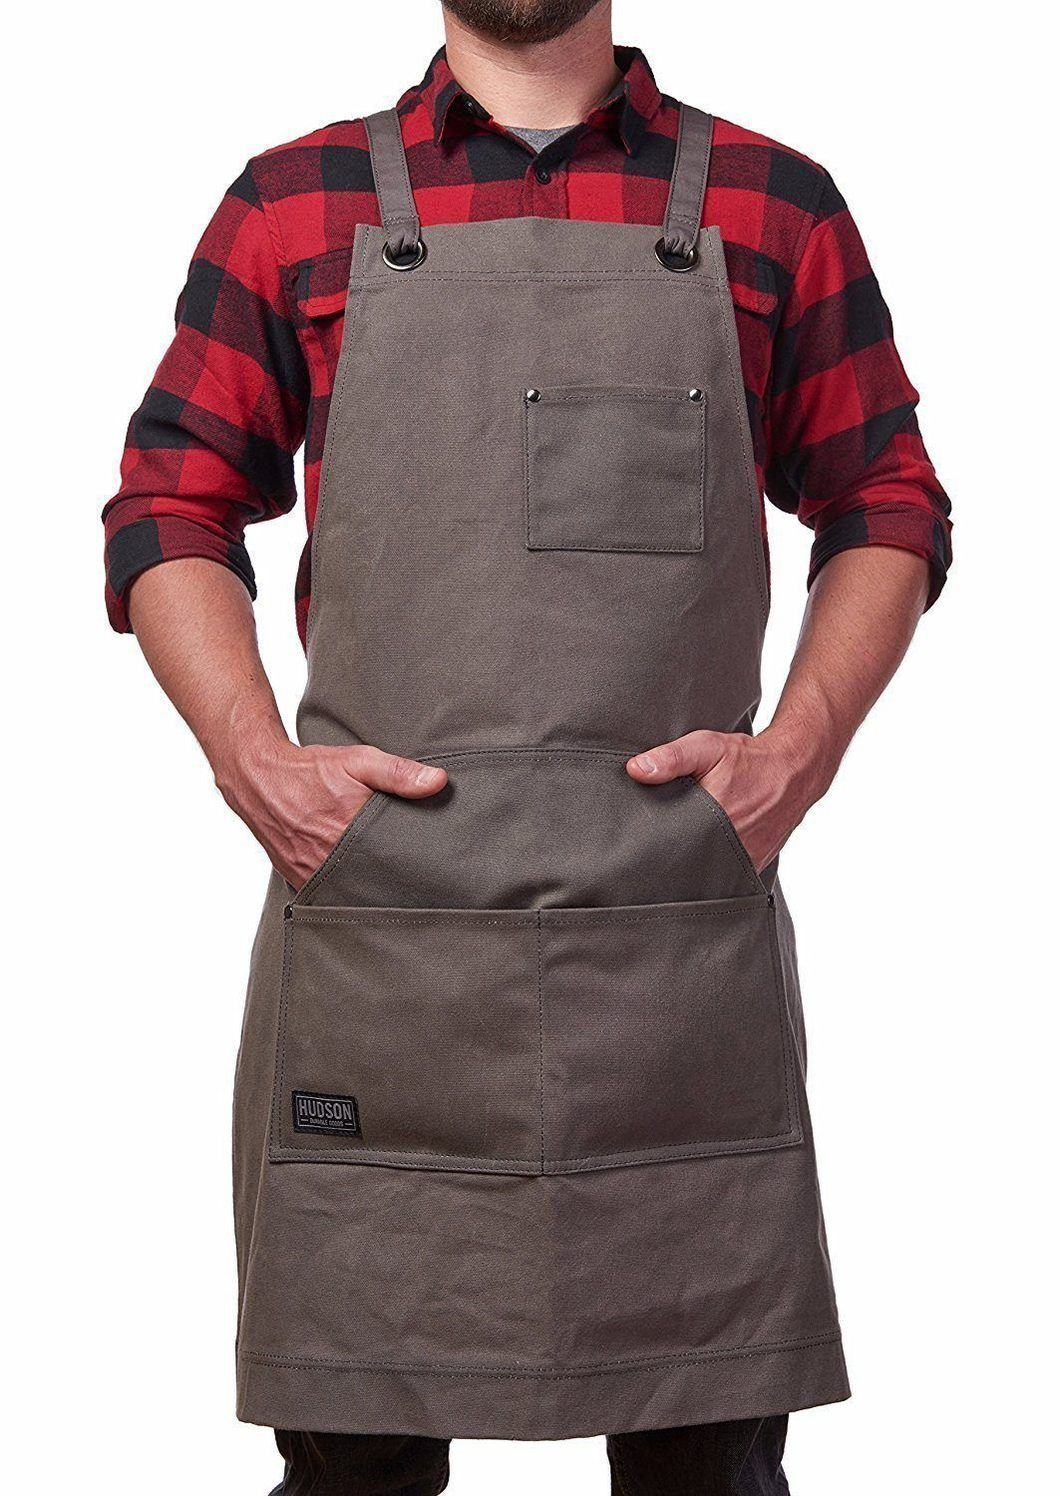 Gardening Apron Woodworking Apron Waxed Waist Tool Apron With Spacious Pockets,